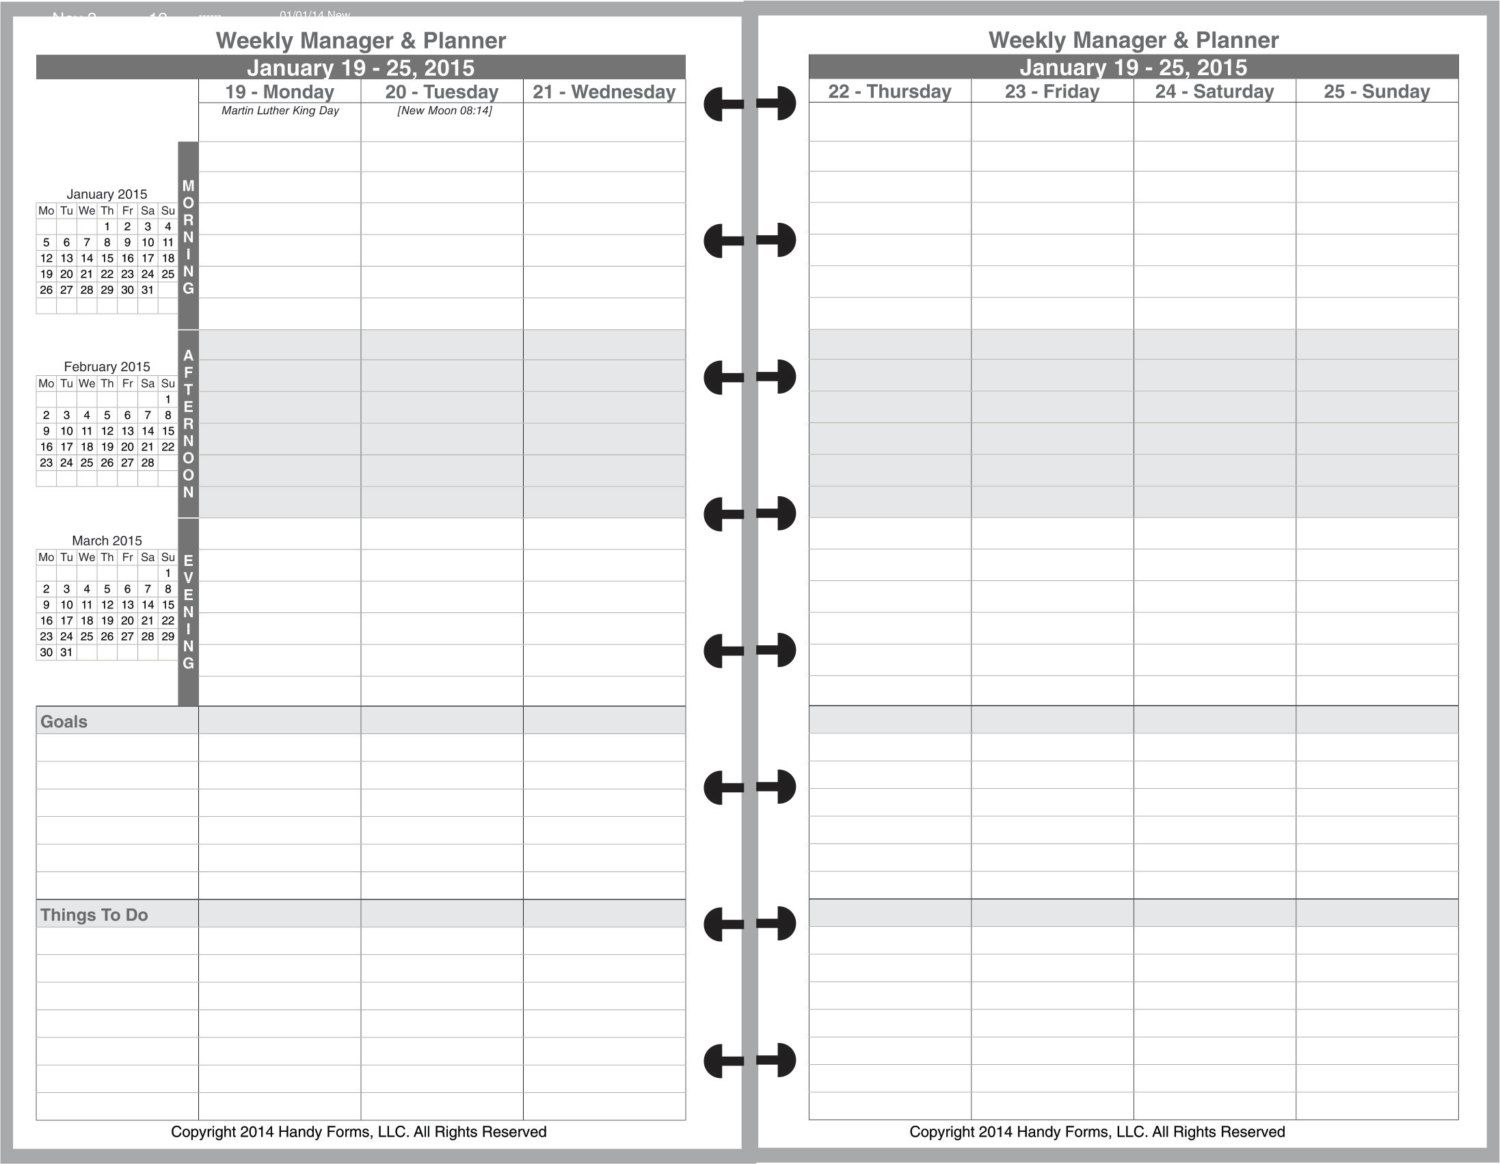 Weekly Manager Planner Organizer 2 Page Per Week 5 By